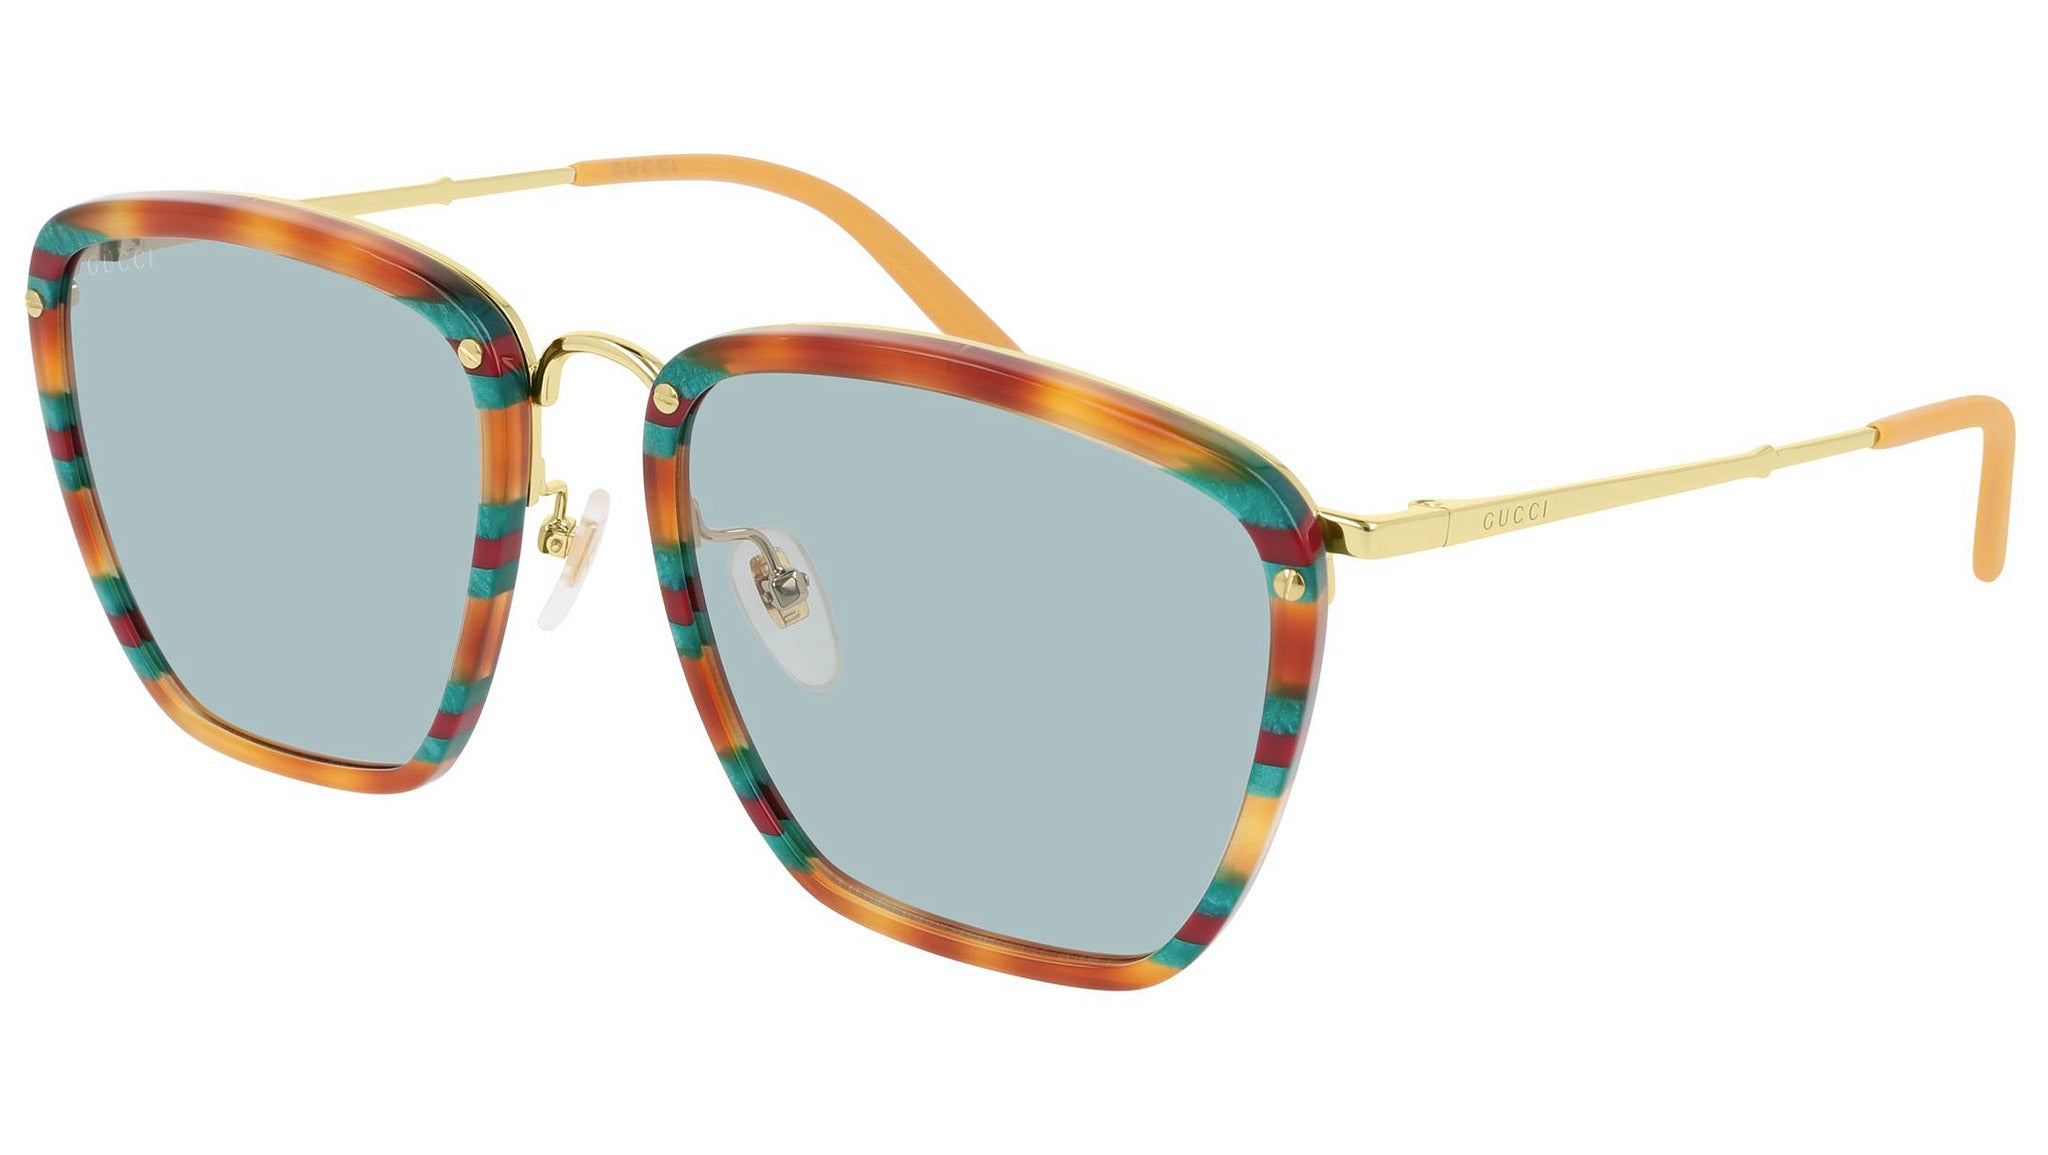 GG0673S multicolor havana and ice blue